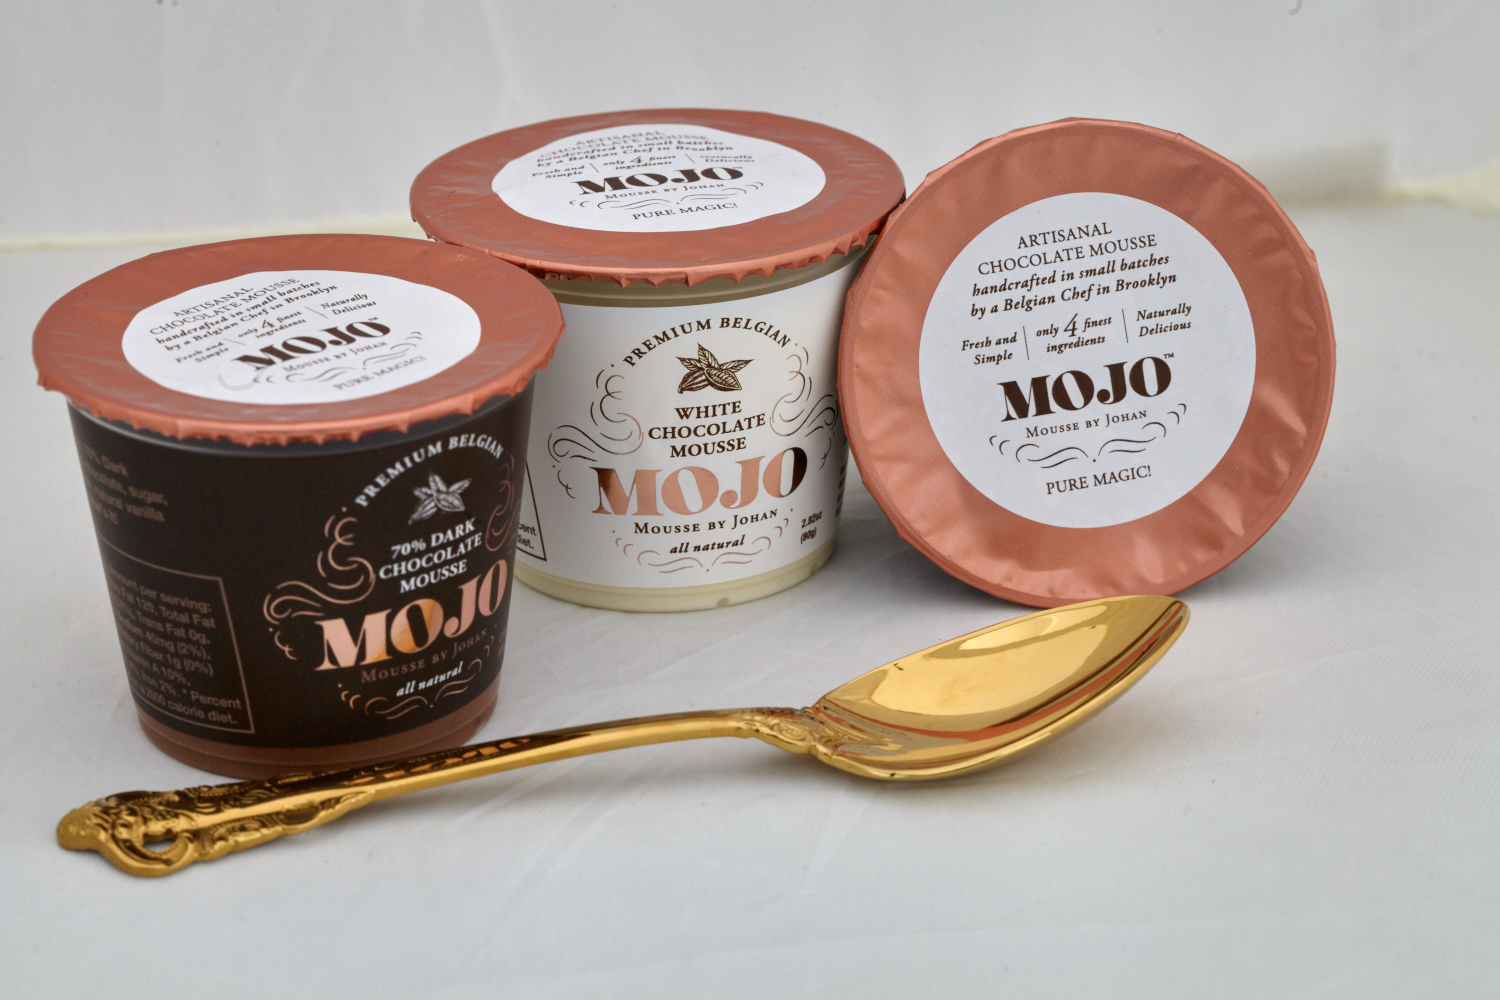 Upgrade Your Pudding Cup with Chocolate Mousse from MOJO Desserts